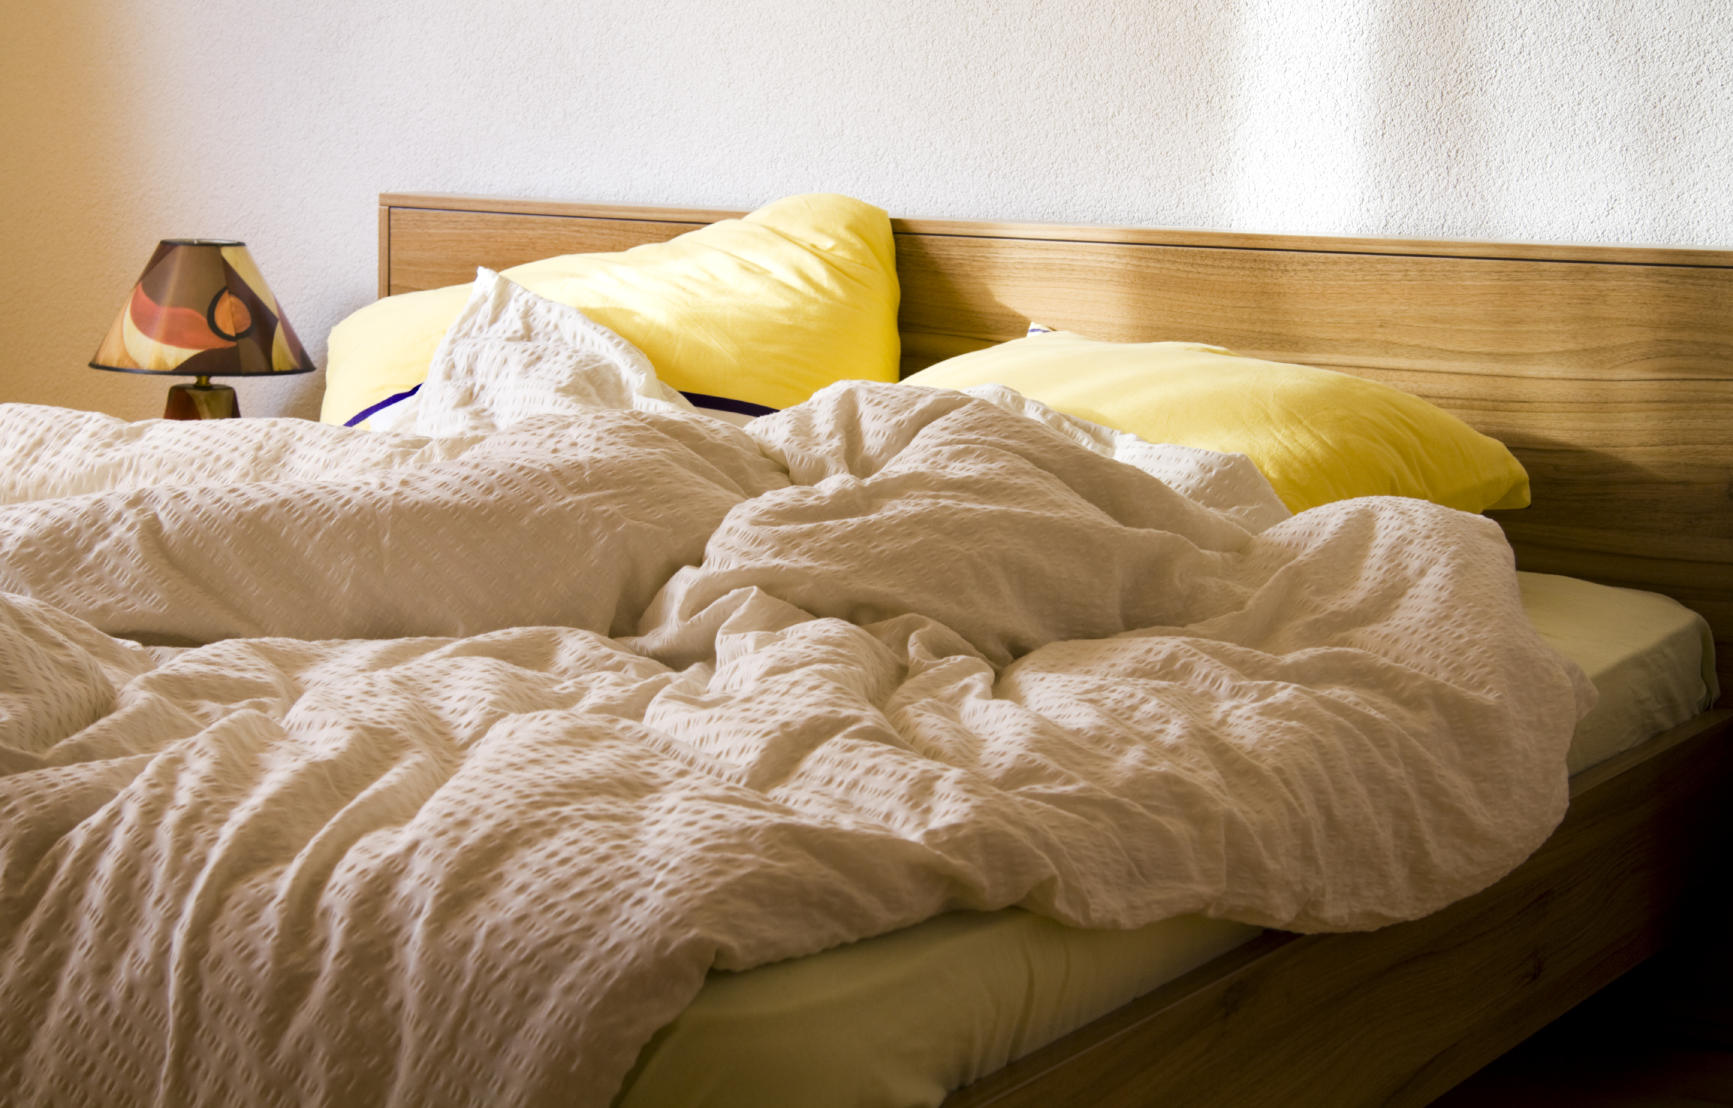 Good News For The Untidy Unmade Beds May Be Good For You